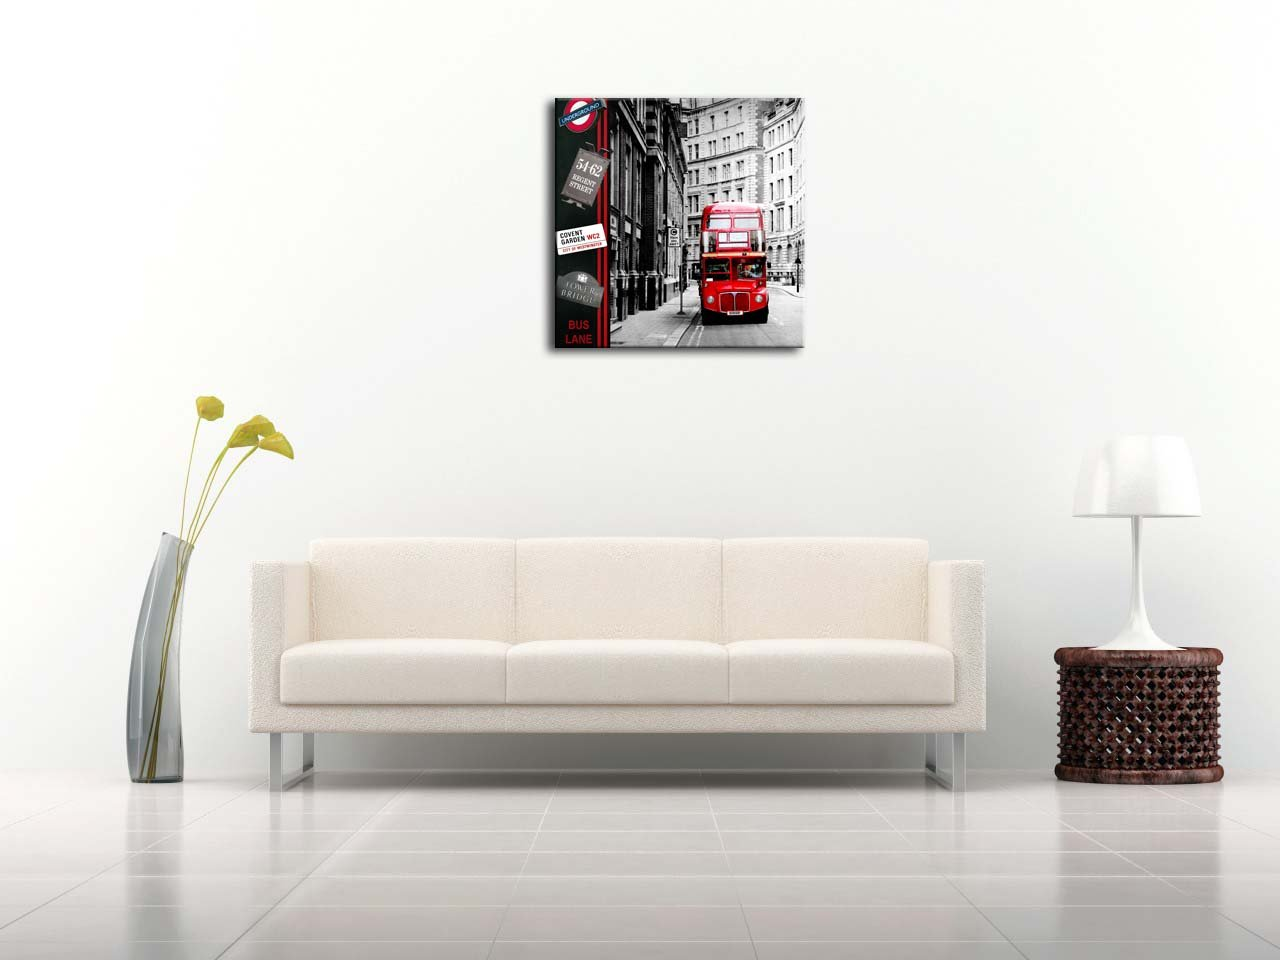 amazon com canvas print wall art painting for home decor london amazon com canvas print wall art painting for home decor london street scene of classic red london bus england city uk british vintage buildings in black